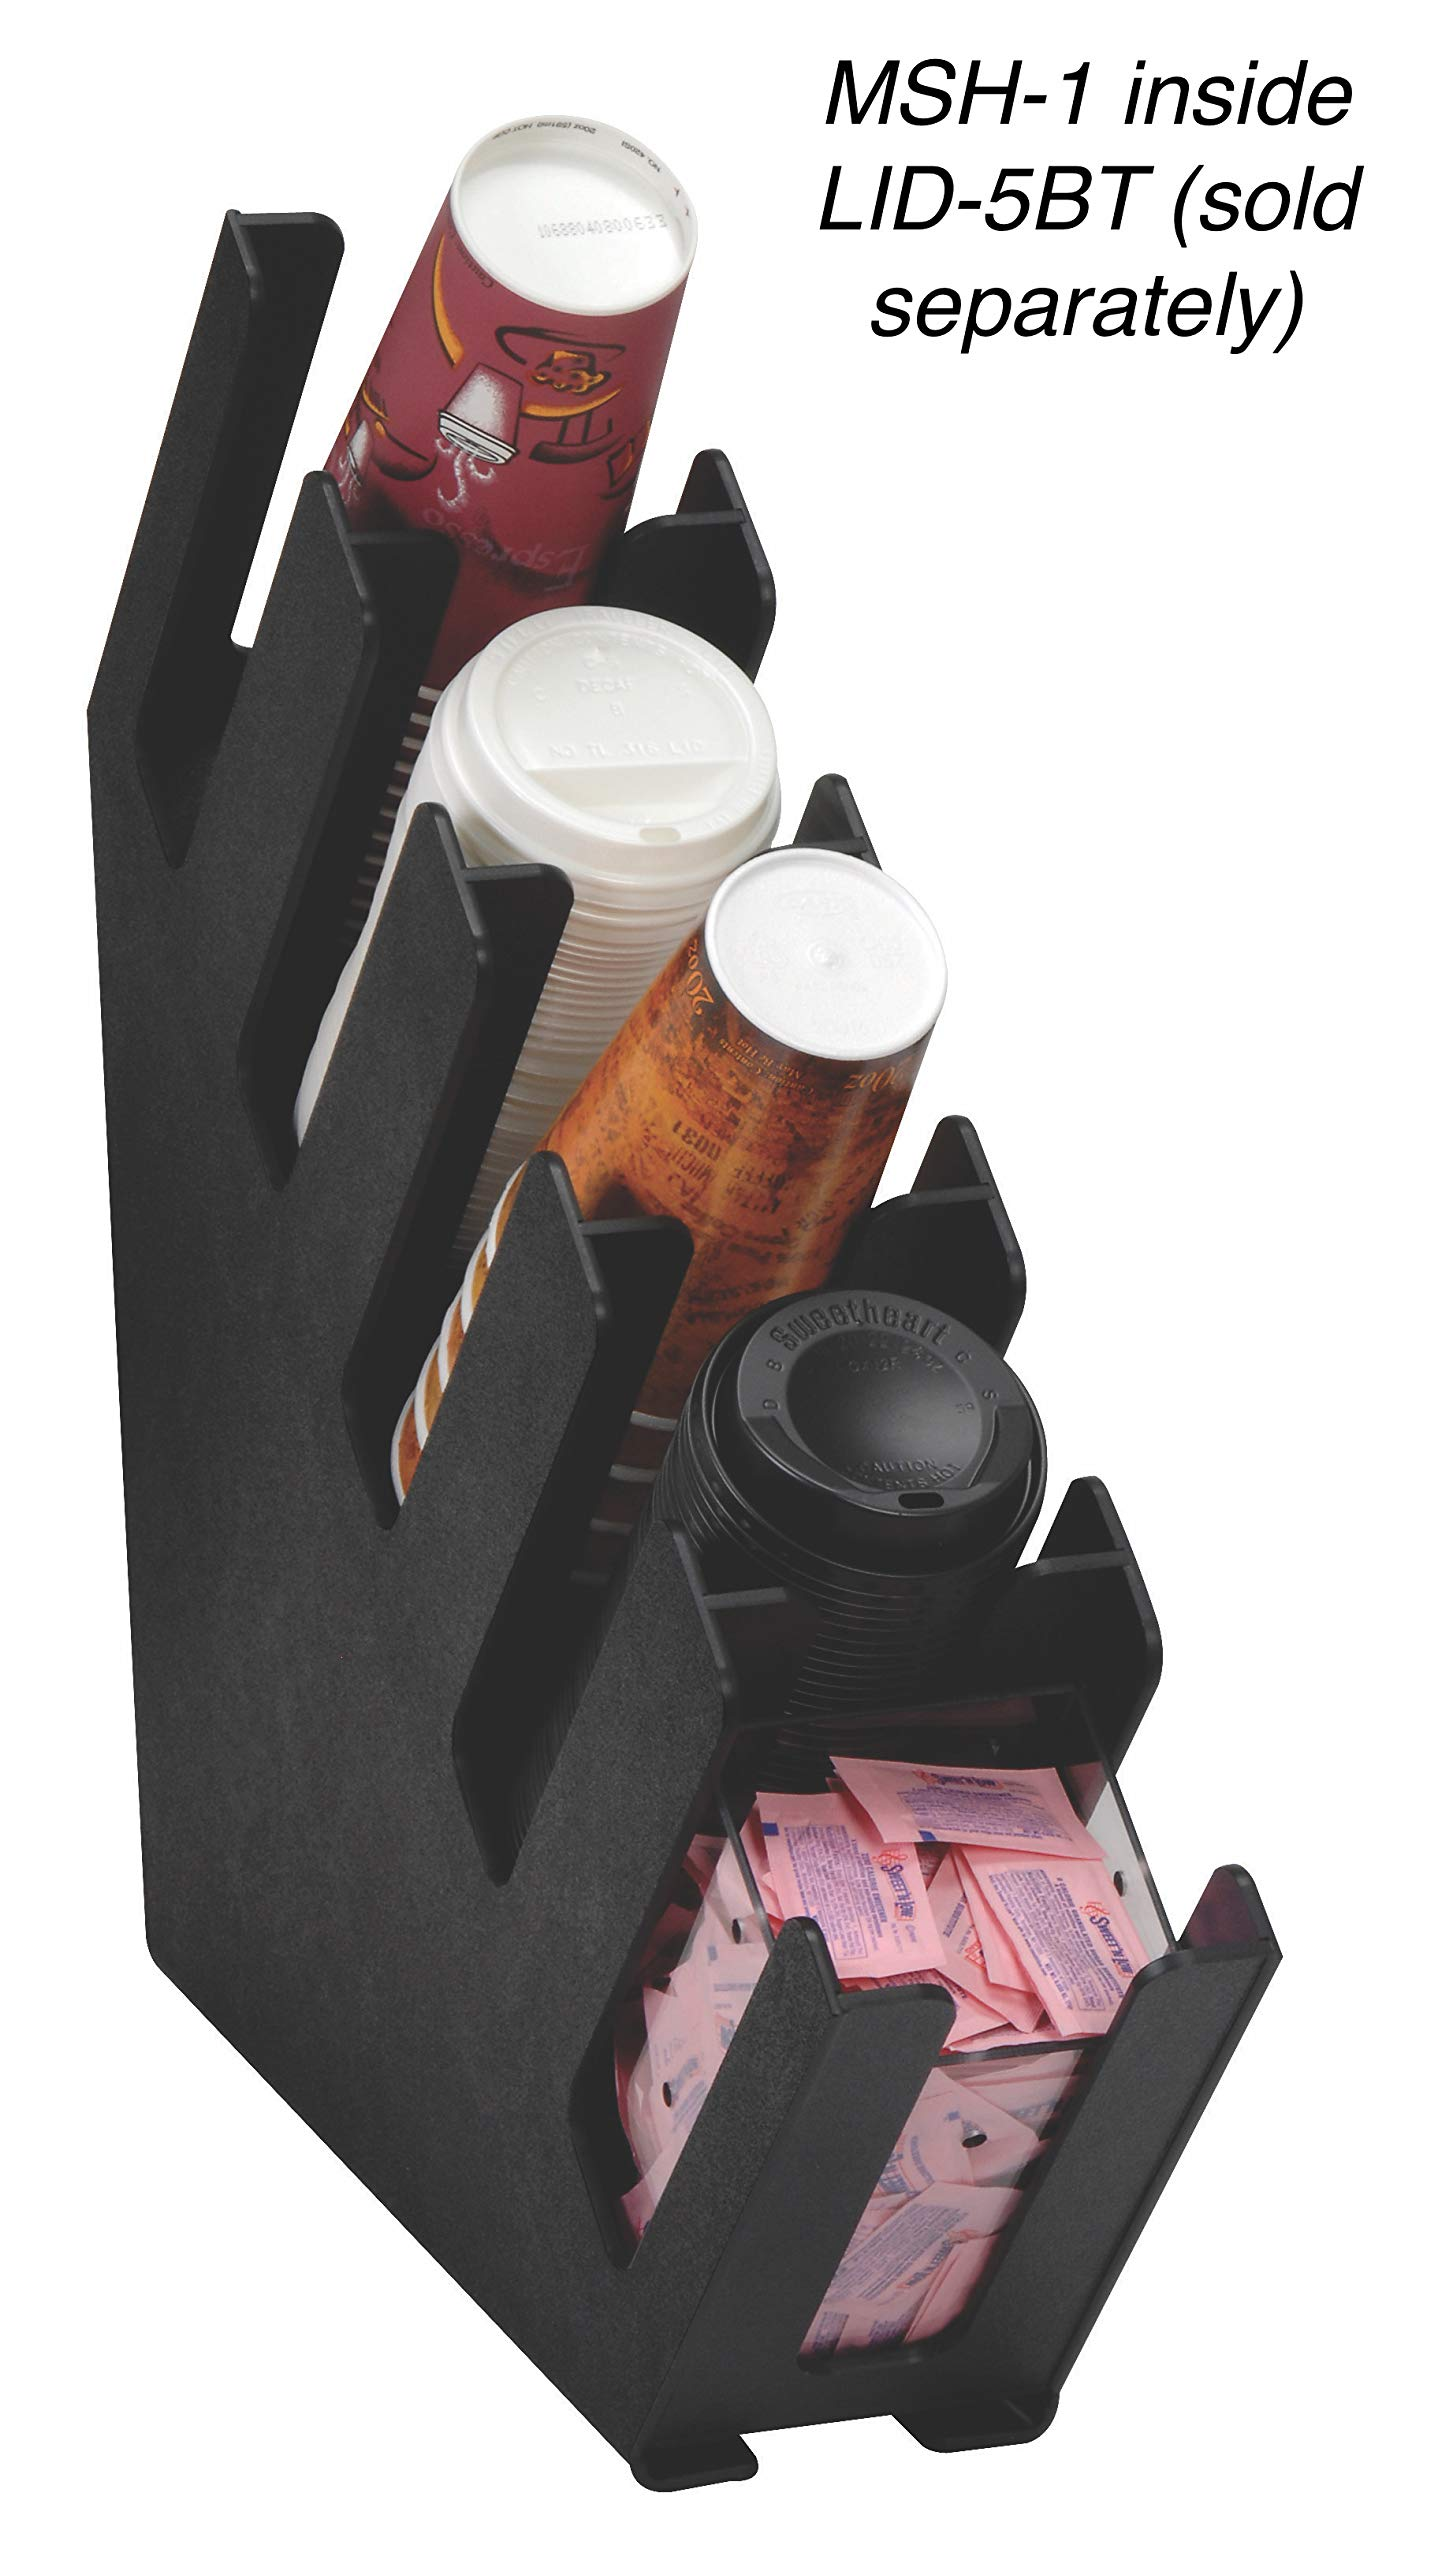 Dispense-Rite MSH-1 Countertop Wrapped/Unwrapped Straw Holder by DISPENSE-RITE